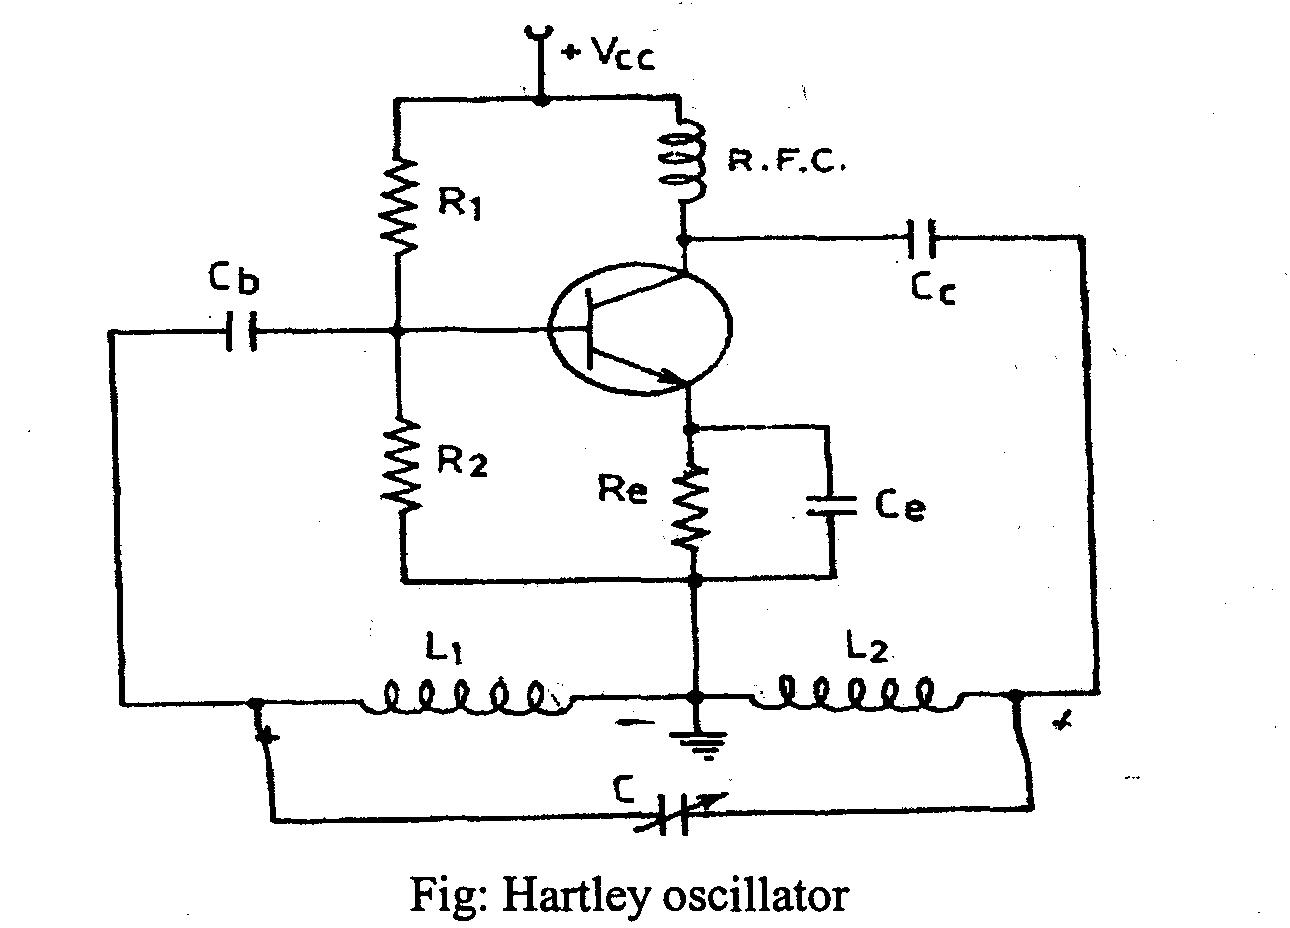 A Media To Get All Datas In Electrical Science September 2011 Hartley Oscillator Frequency Determining Network Is Parallel Resonant Circuit Consisting Of Inductors L1 And L2 Variable Capacitor C The Junction